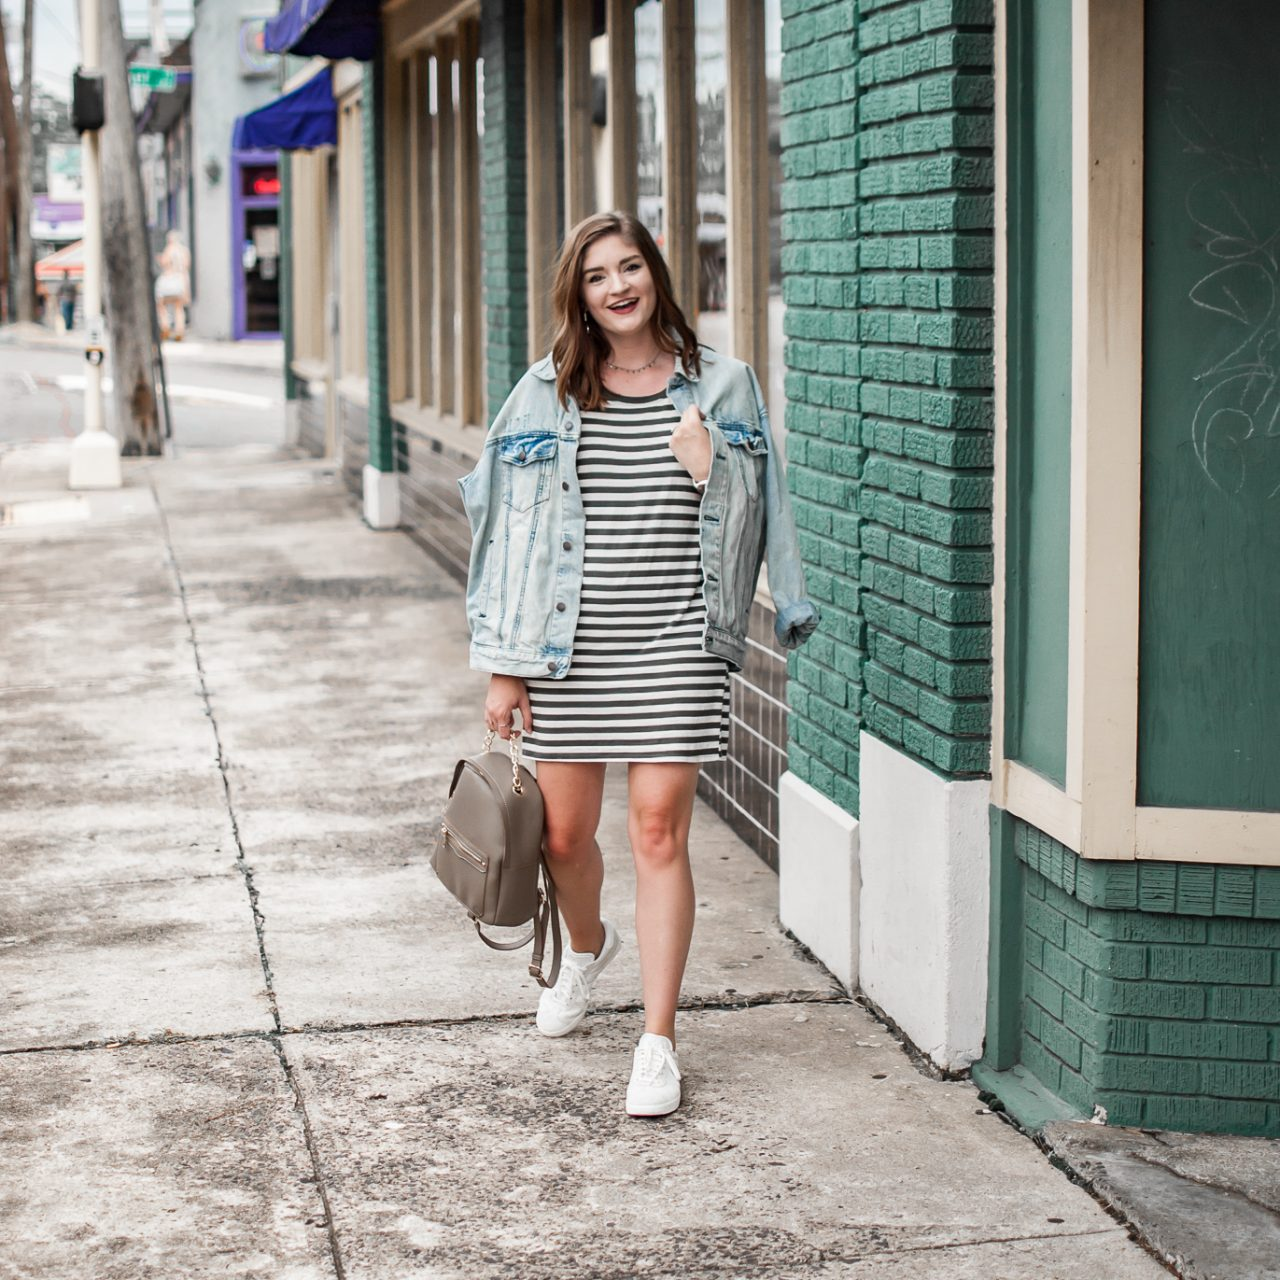 Style Challenge Update + The Dress Everyone Needs in Their Closet